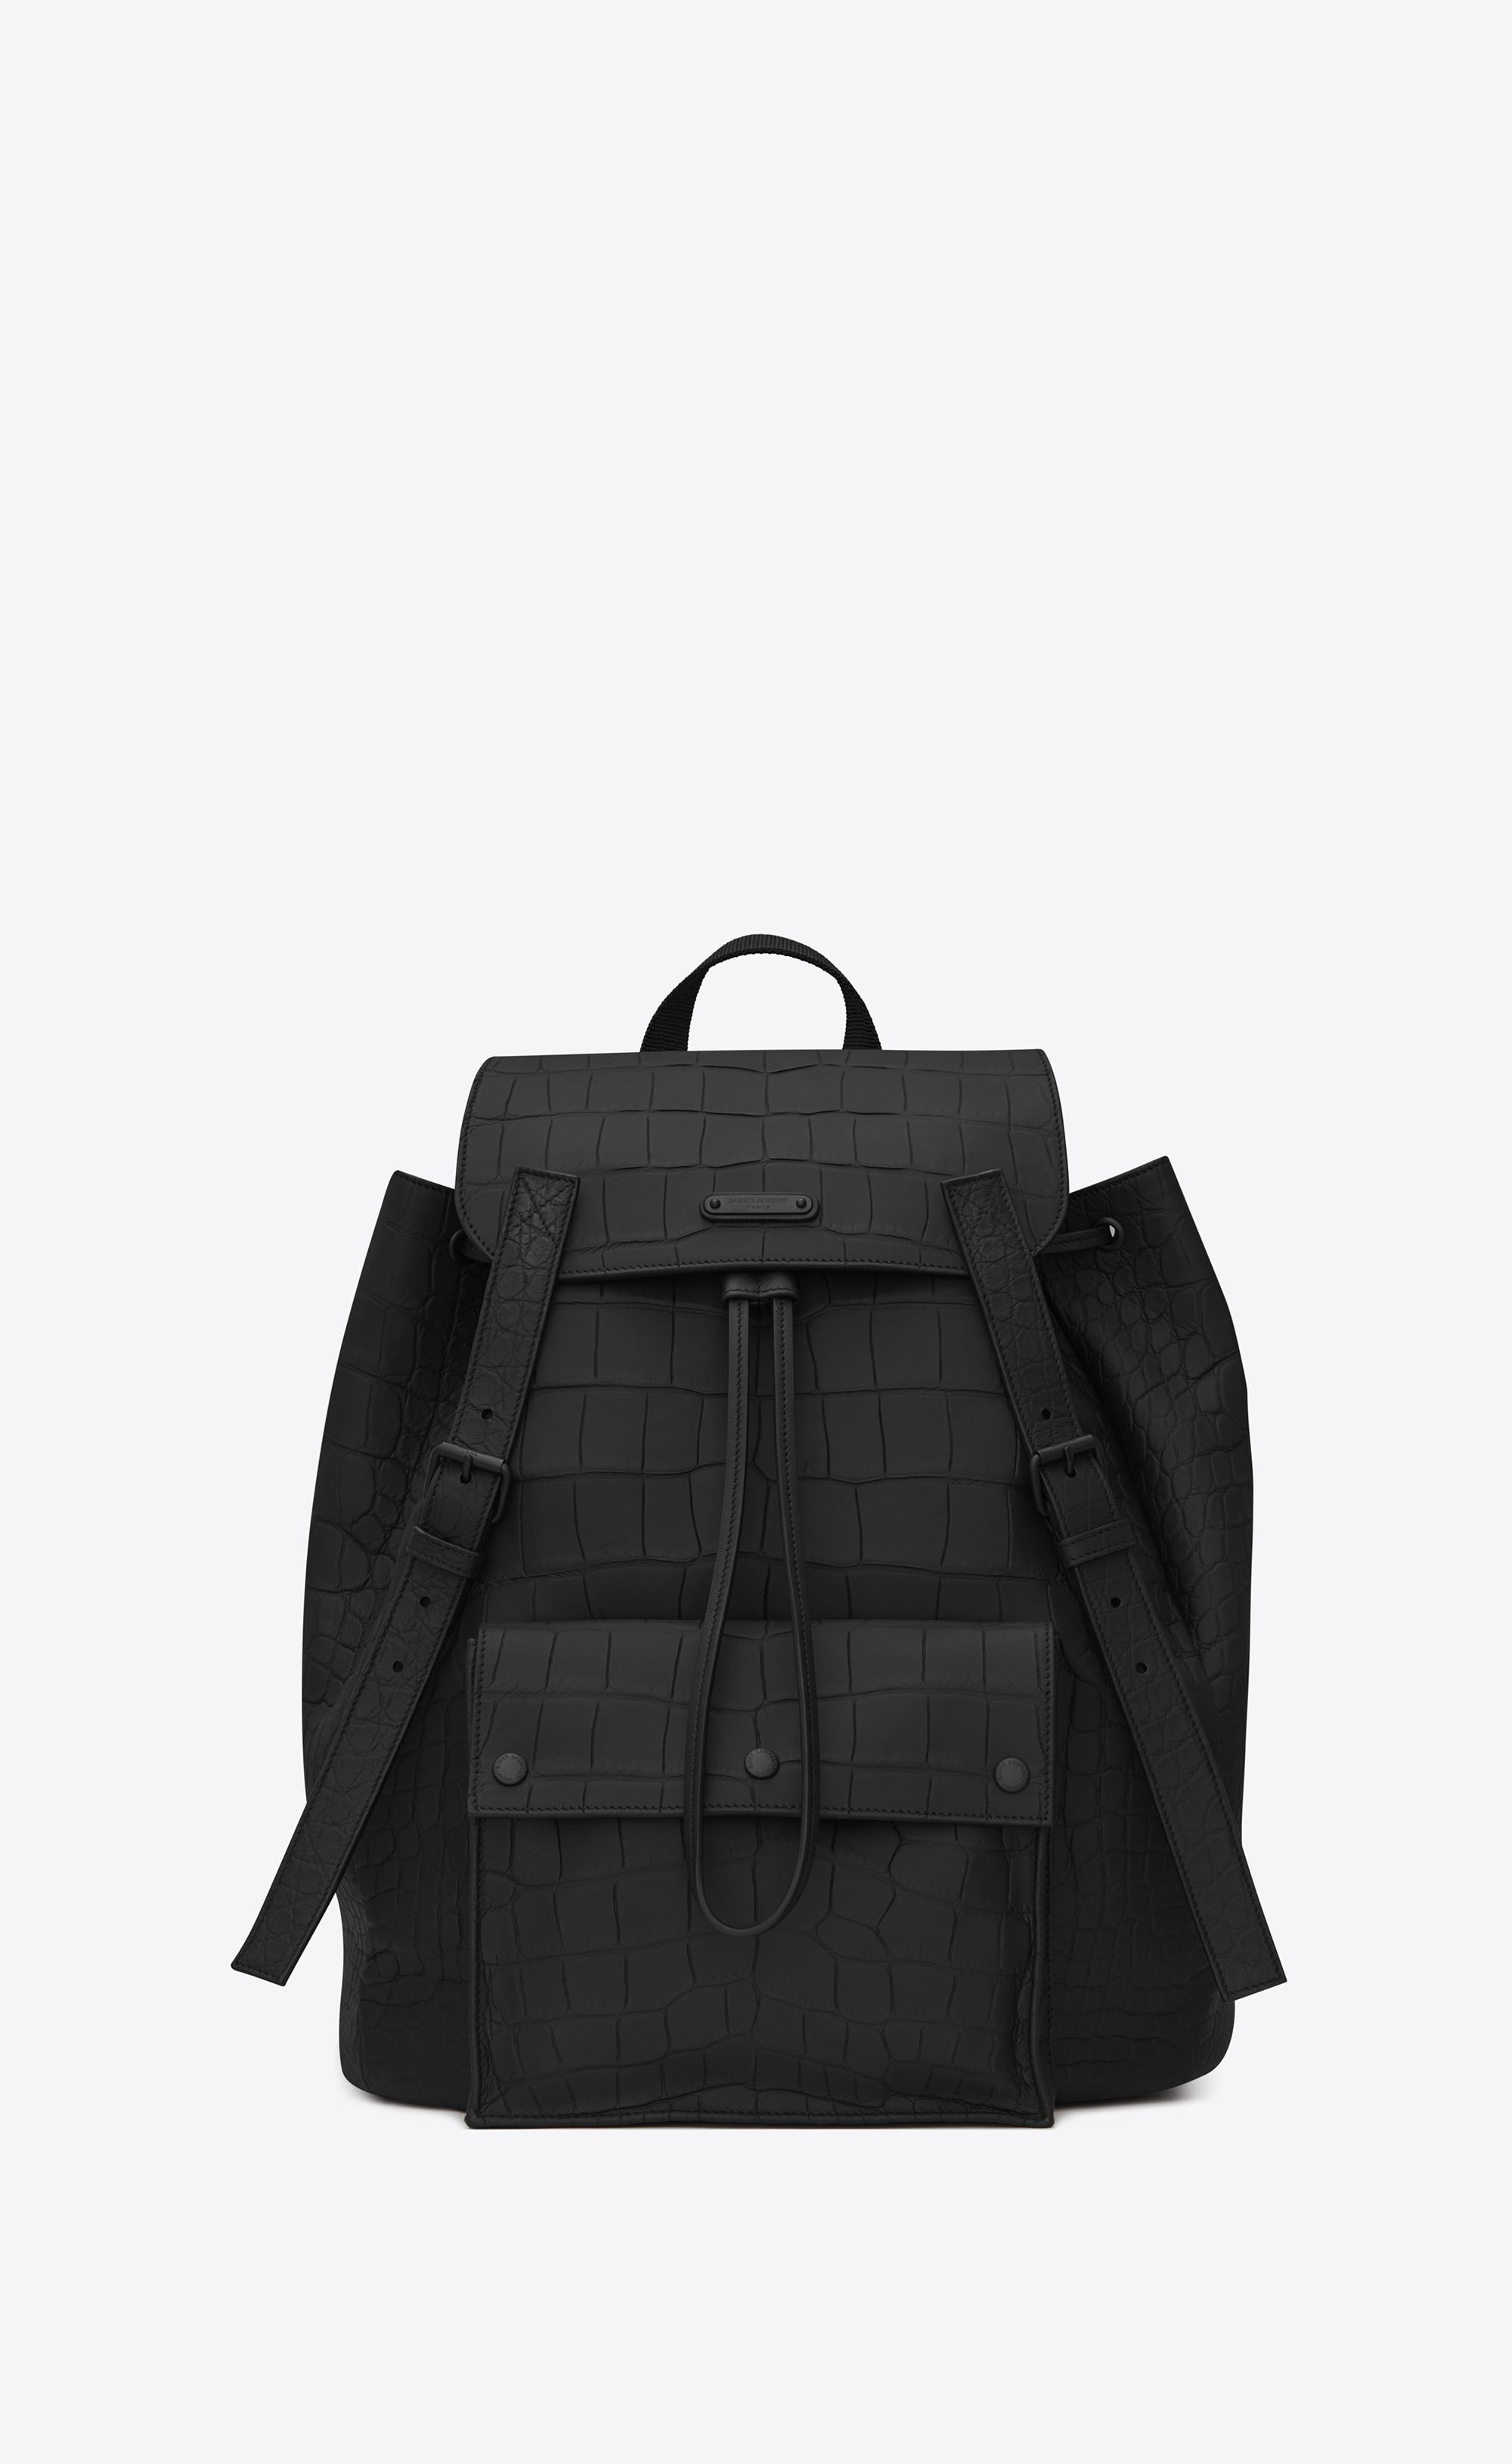 cf88abbba4 Saint Laurent Noe Saint Laurent Backpack In Black Crocodile